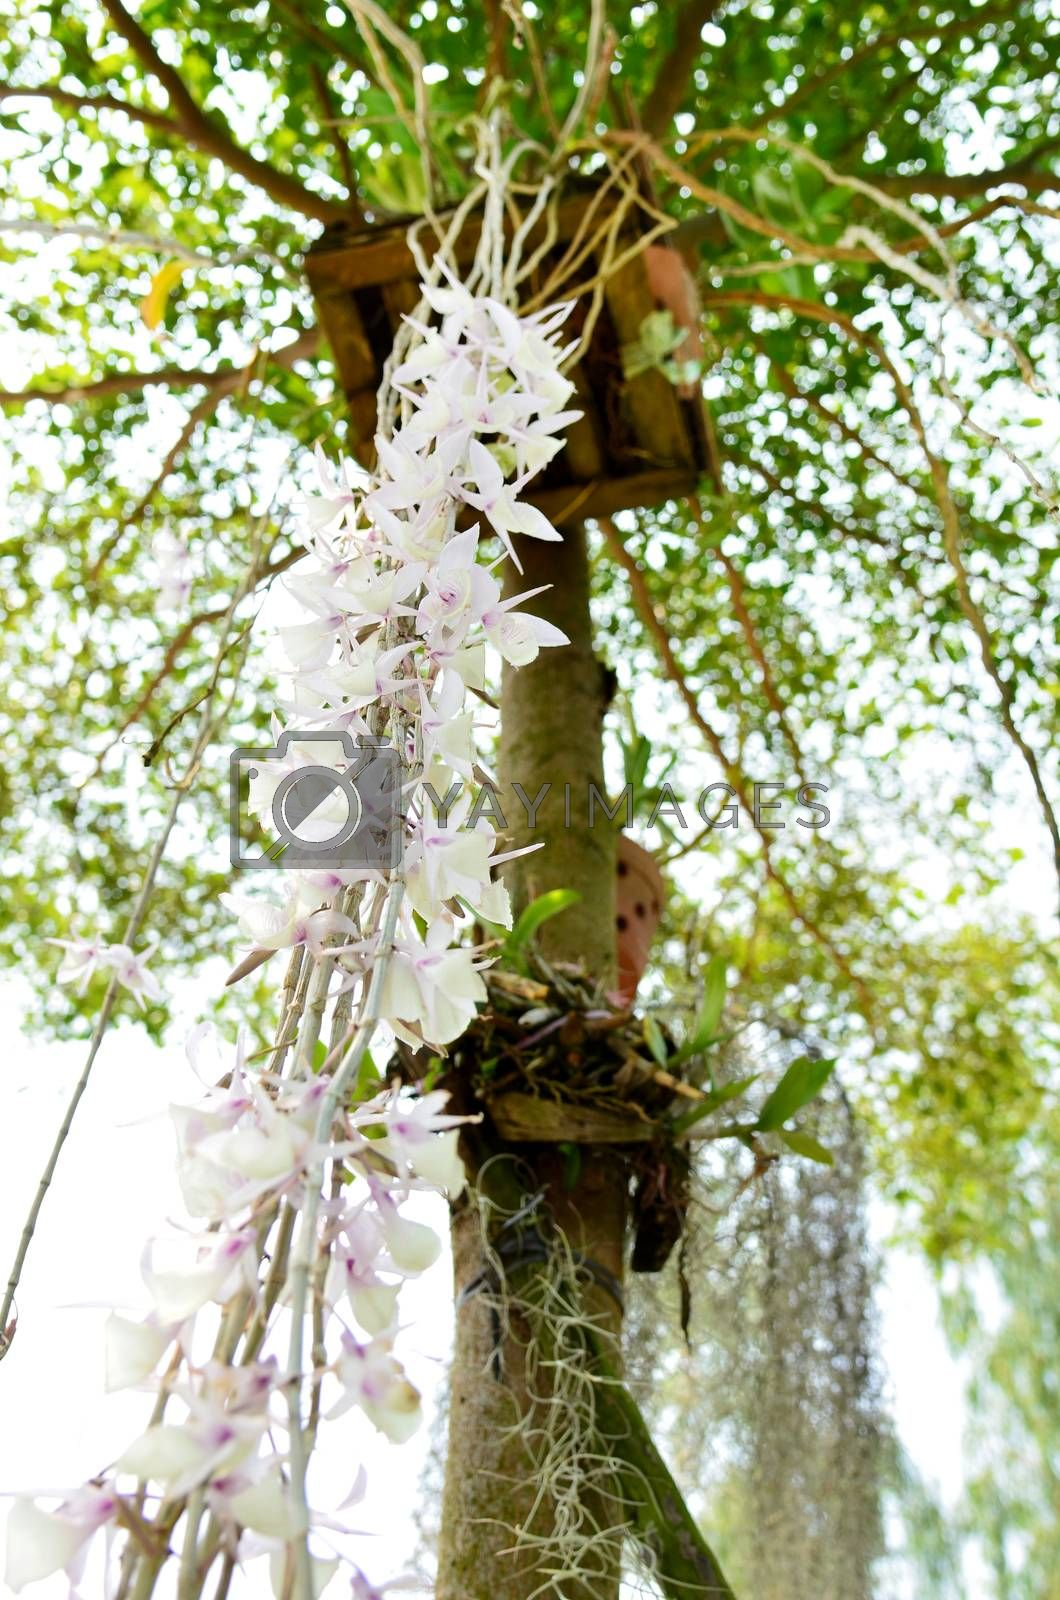 Royalty free image of orchids on trees by jengit